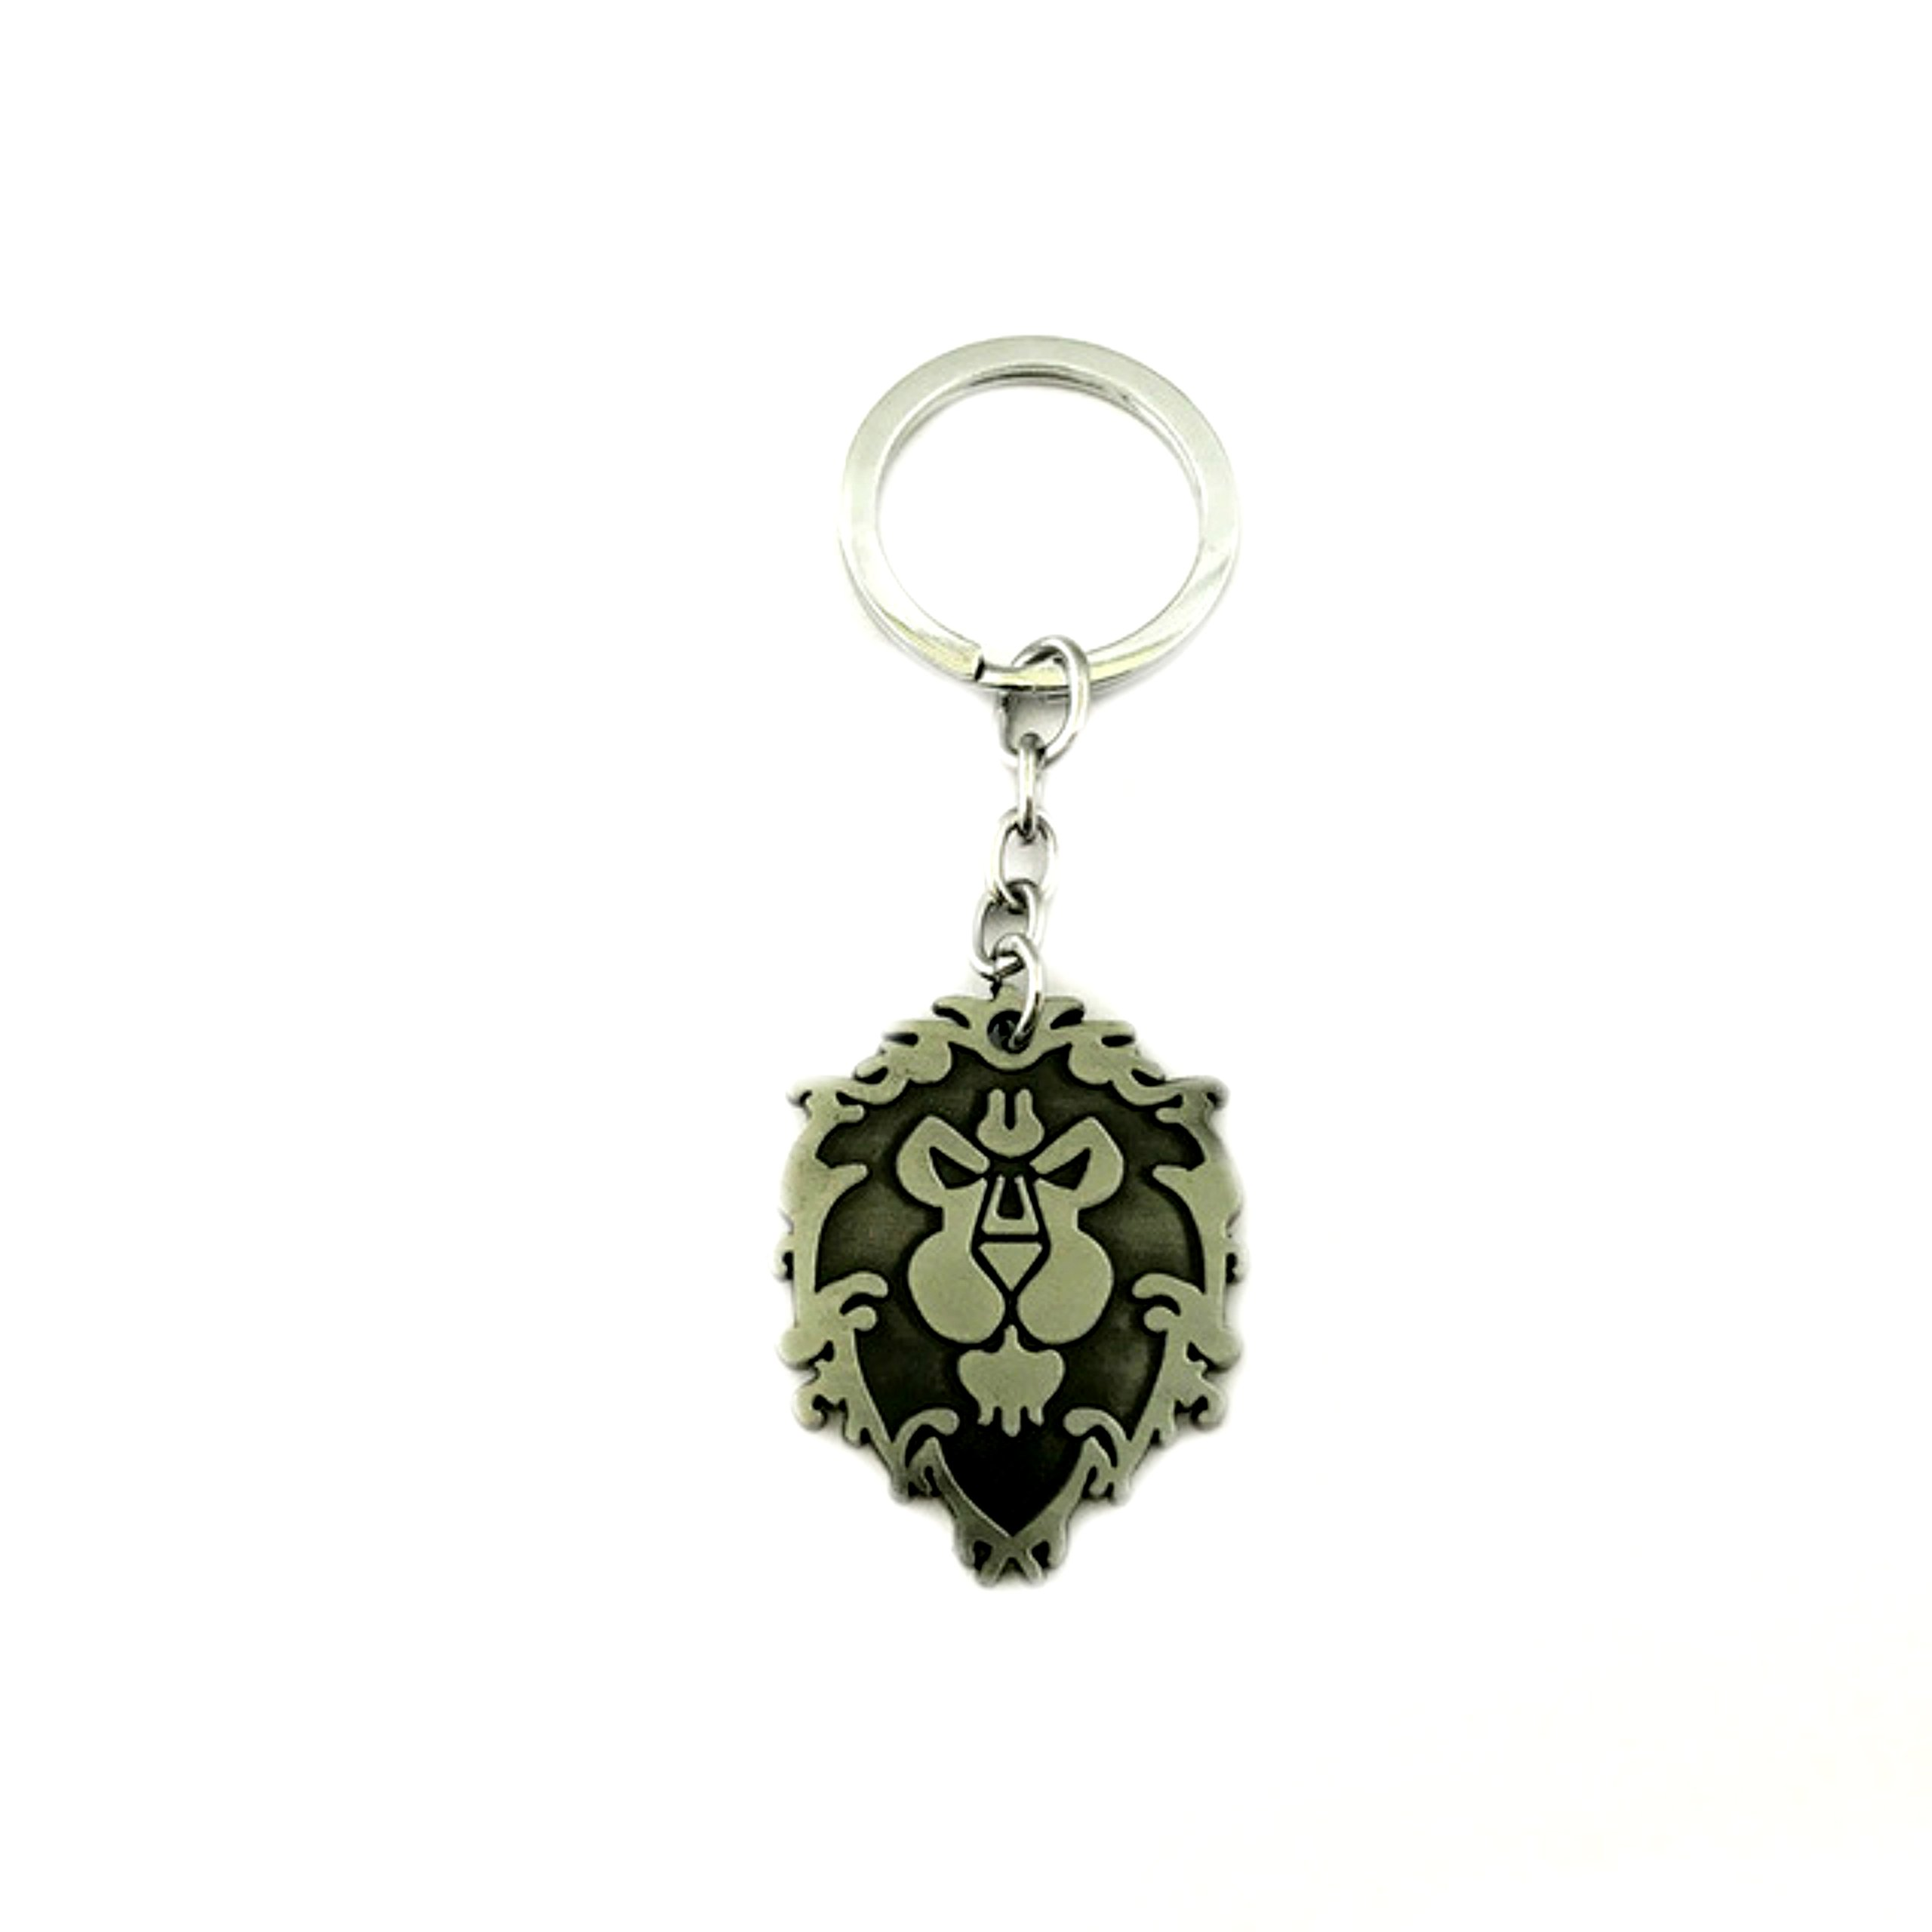 World of Warcraft Keychain Key Ring Video Games PC Console Gaming Auto/Boat House Keys